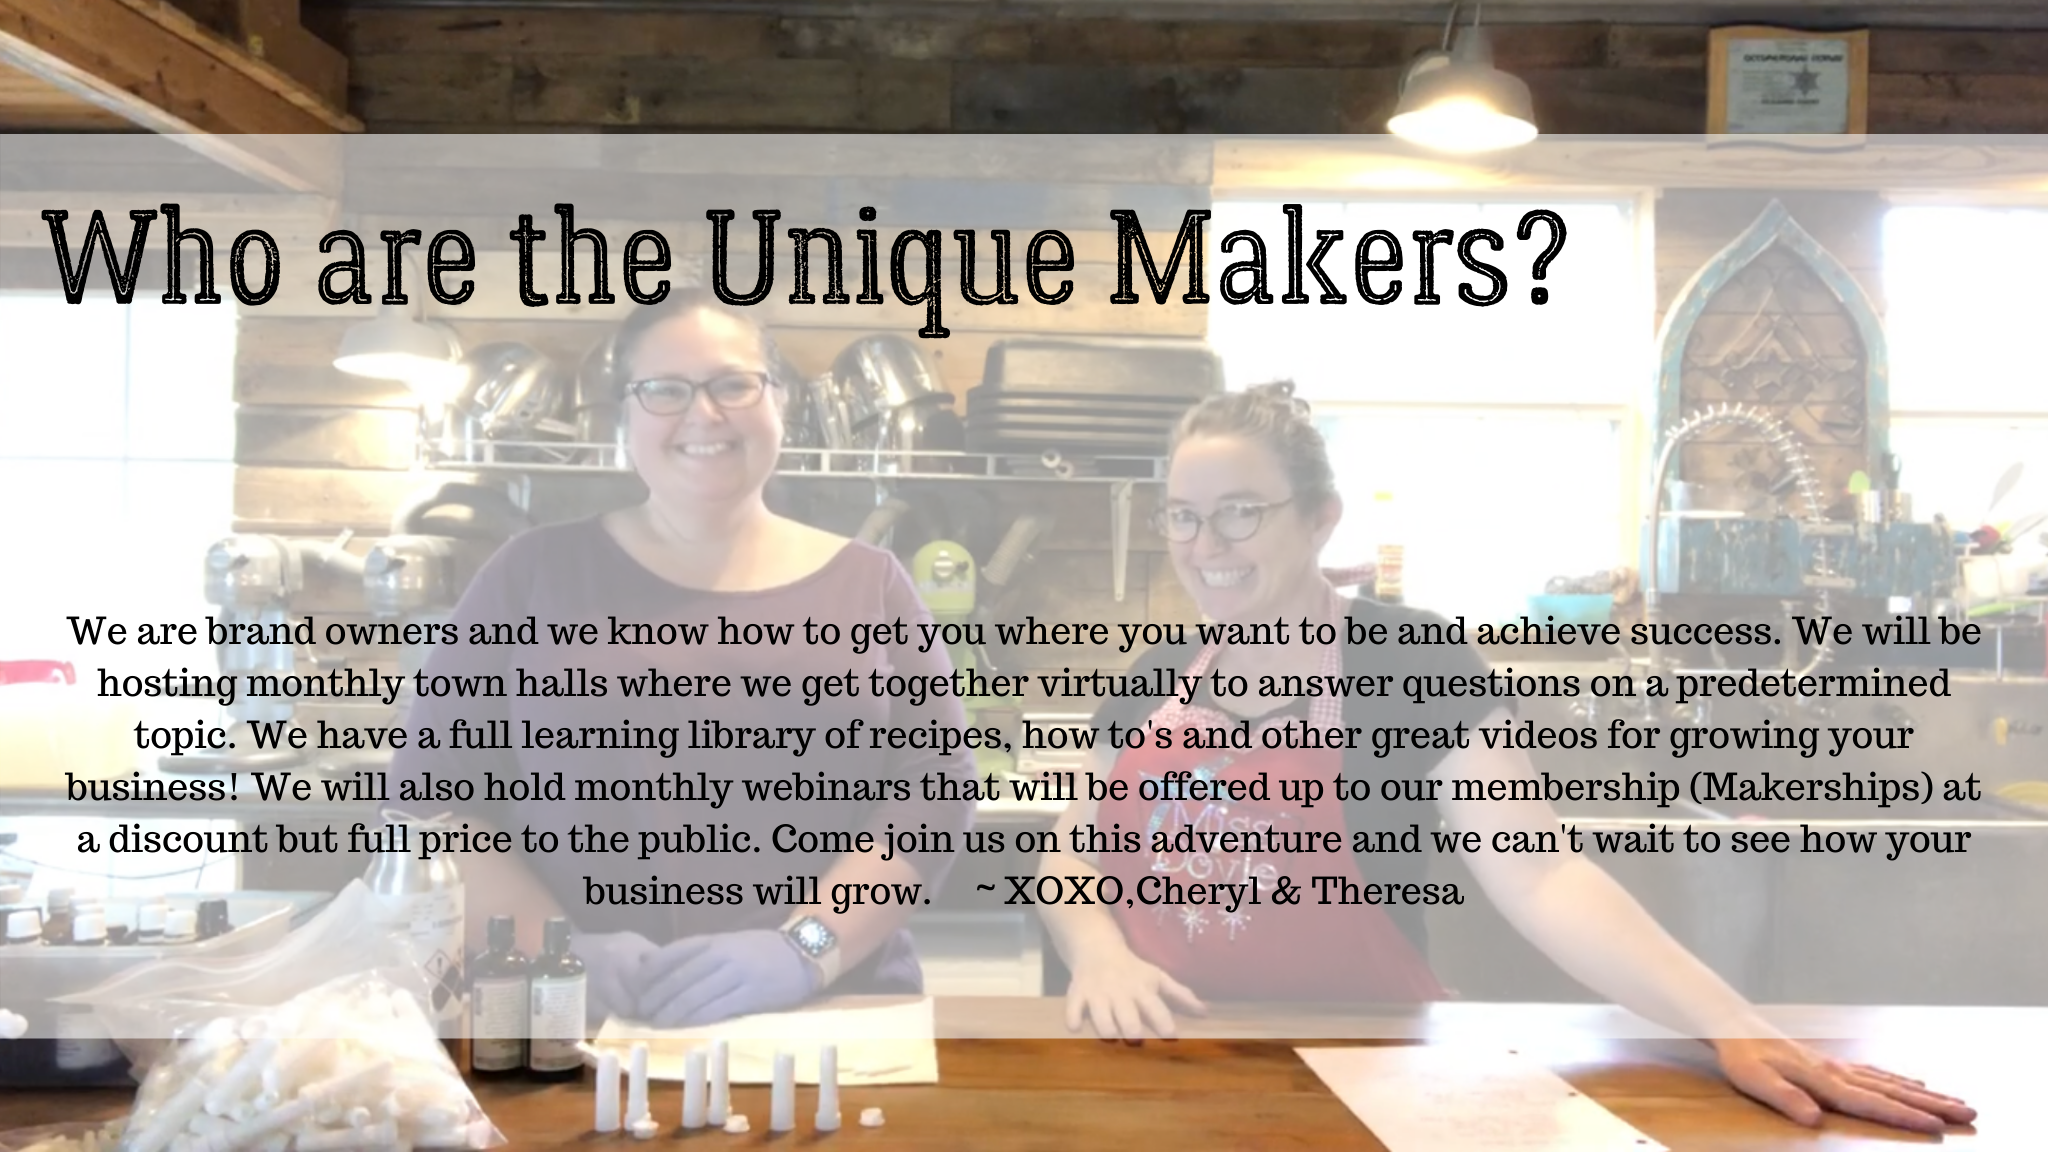 Who are the Unique Makers?